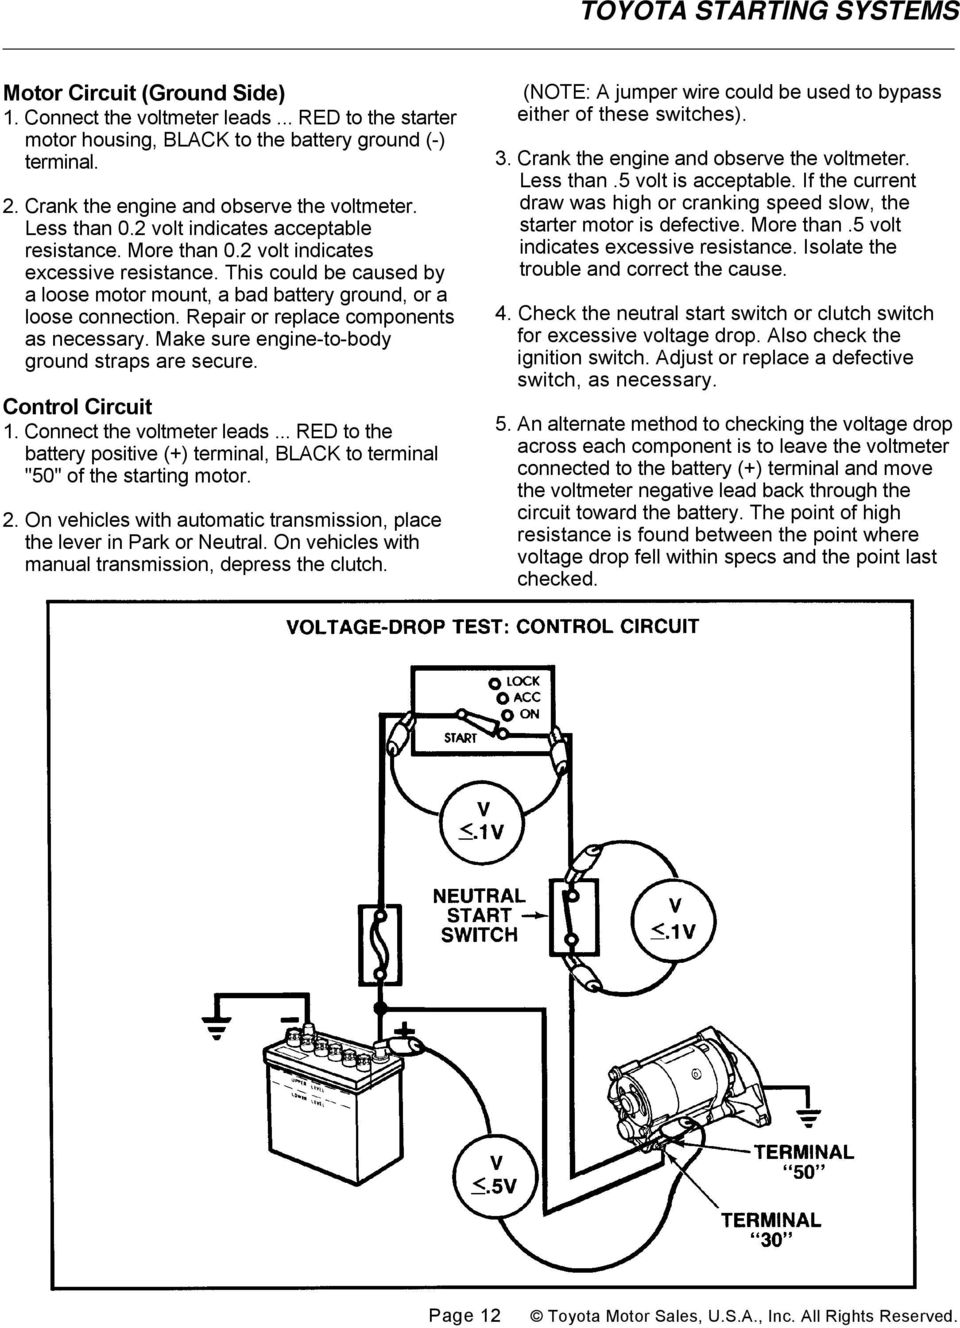 TOYOTA STARTING SYSTEMS  General - PDF